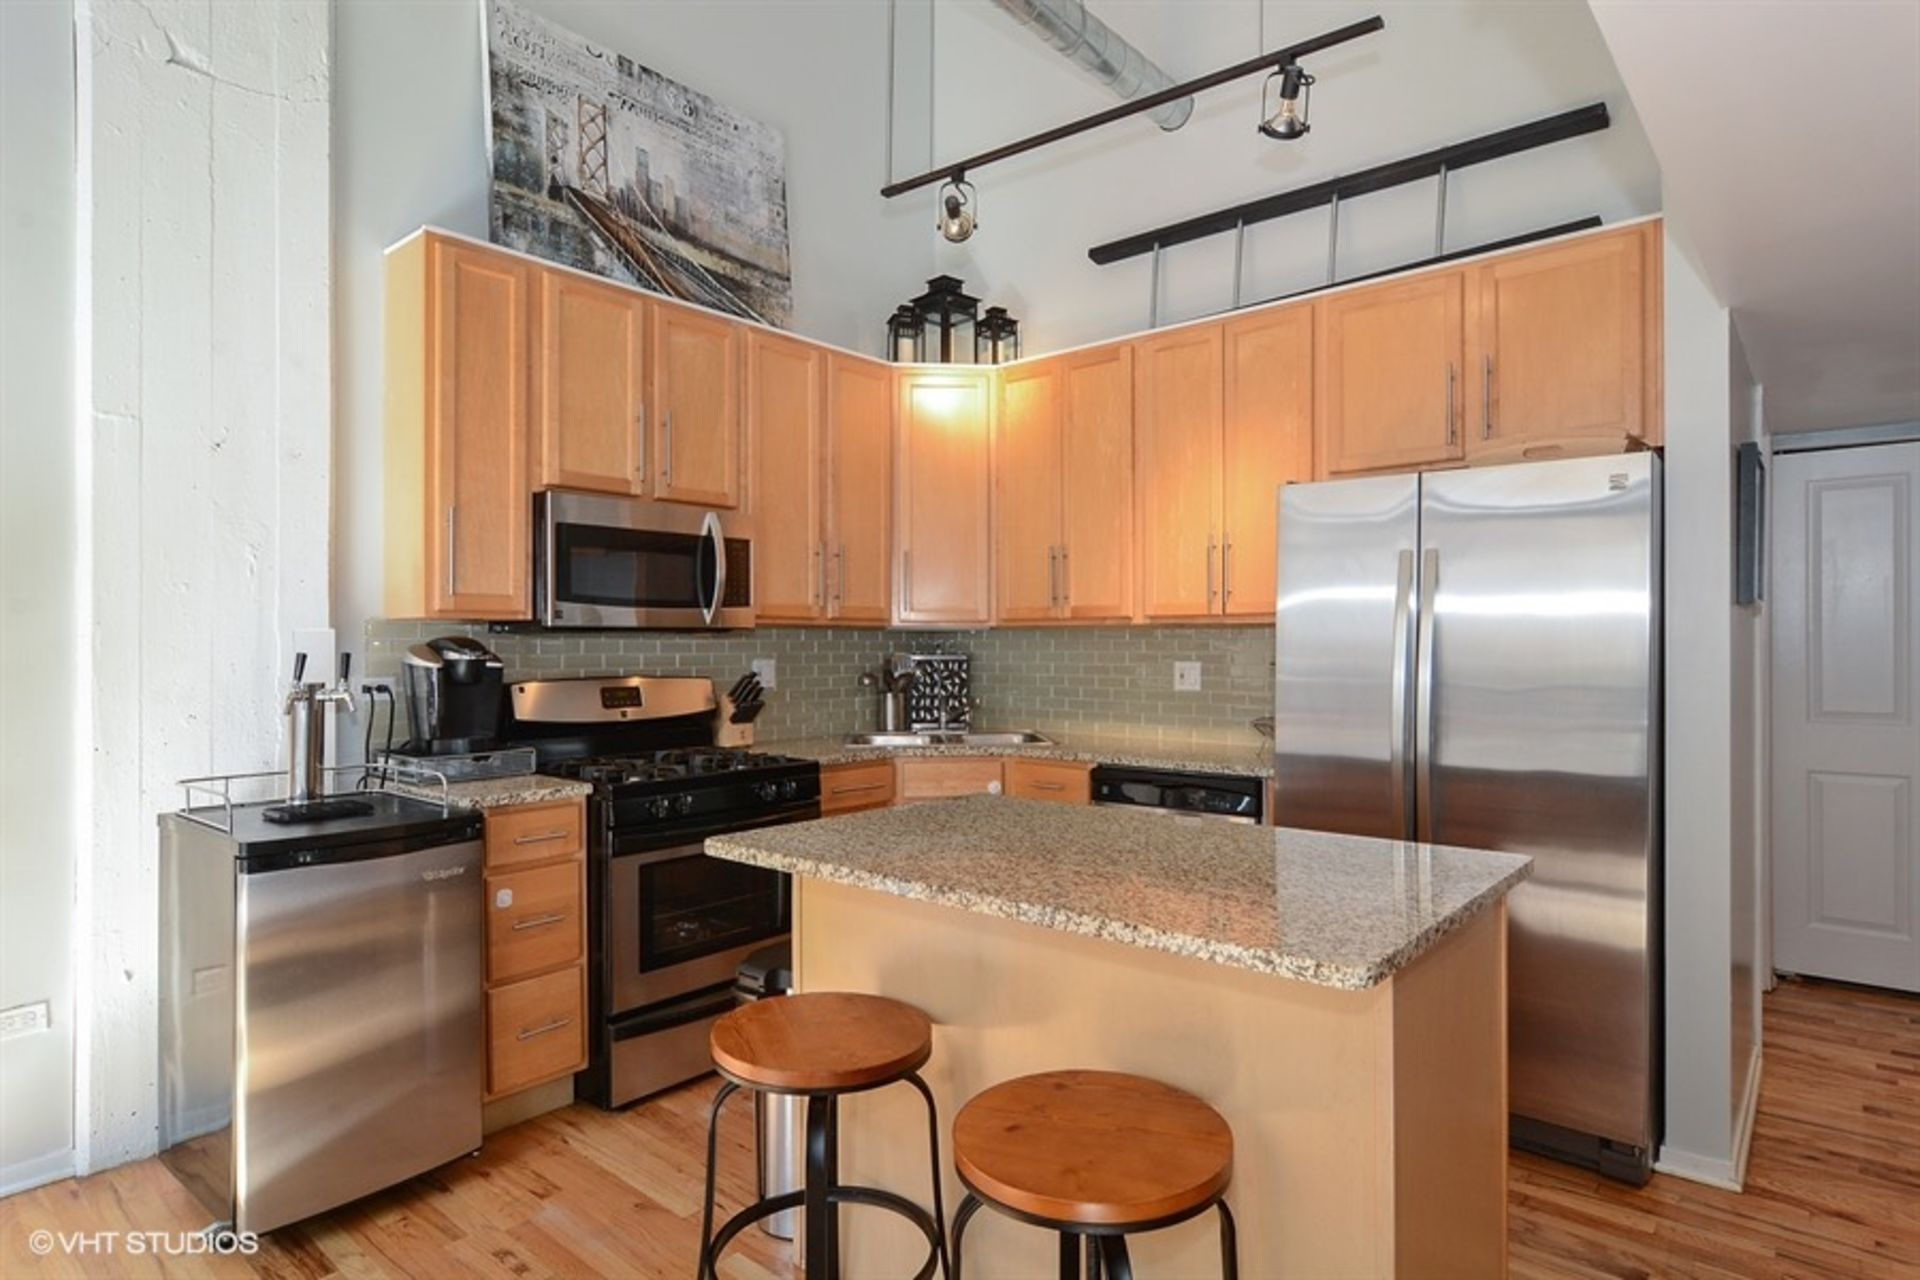 Is Stainless Steel Still the Standard?